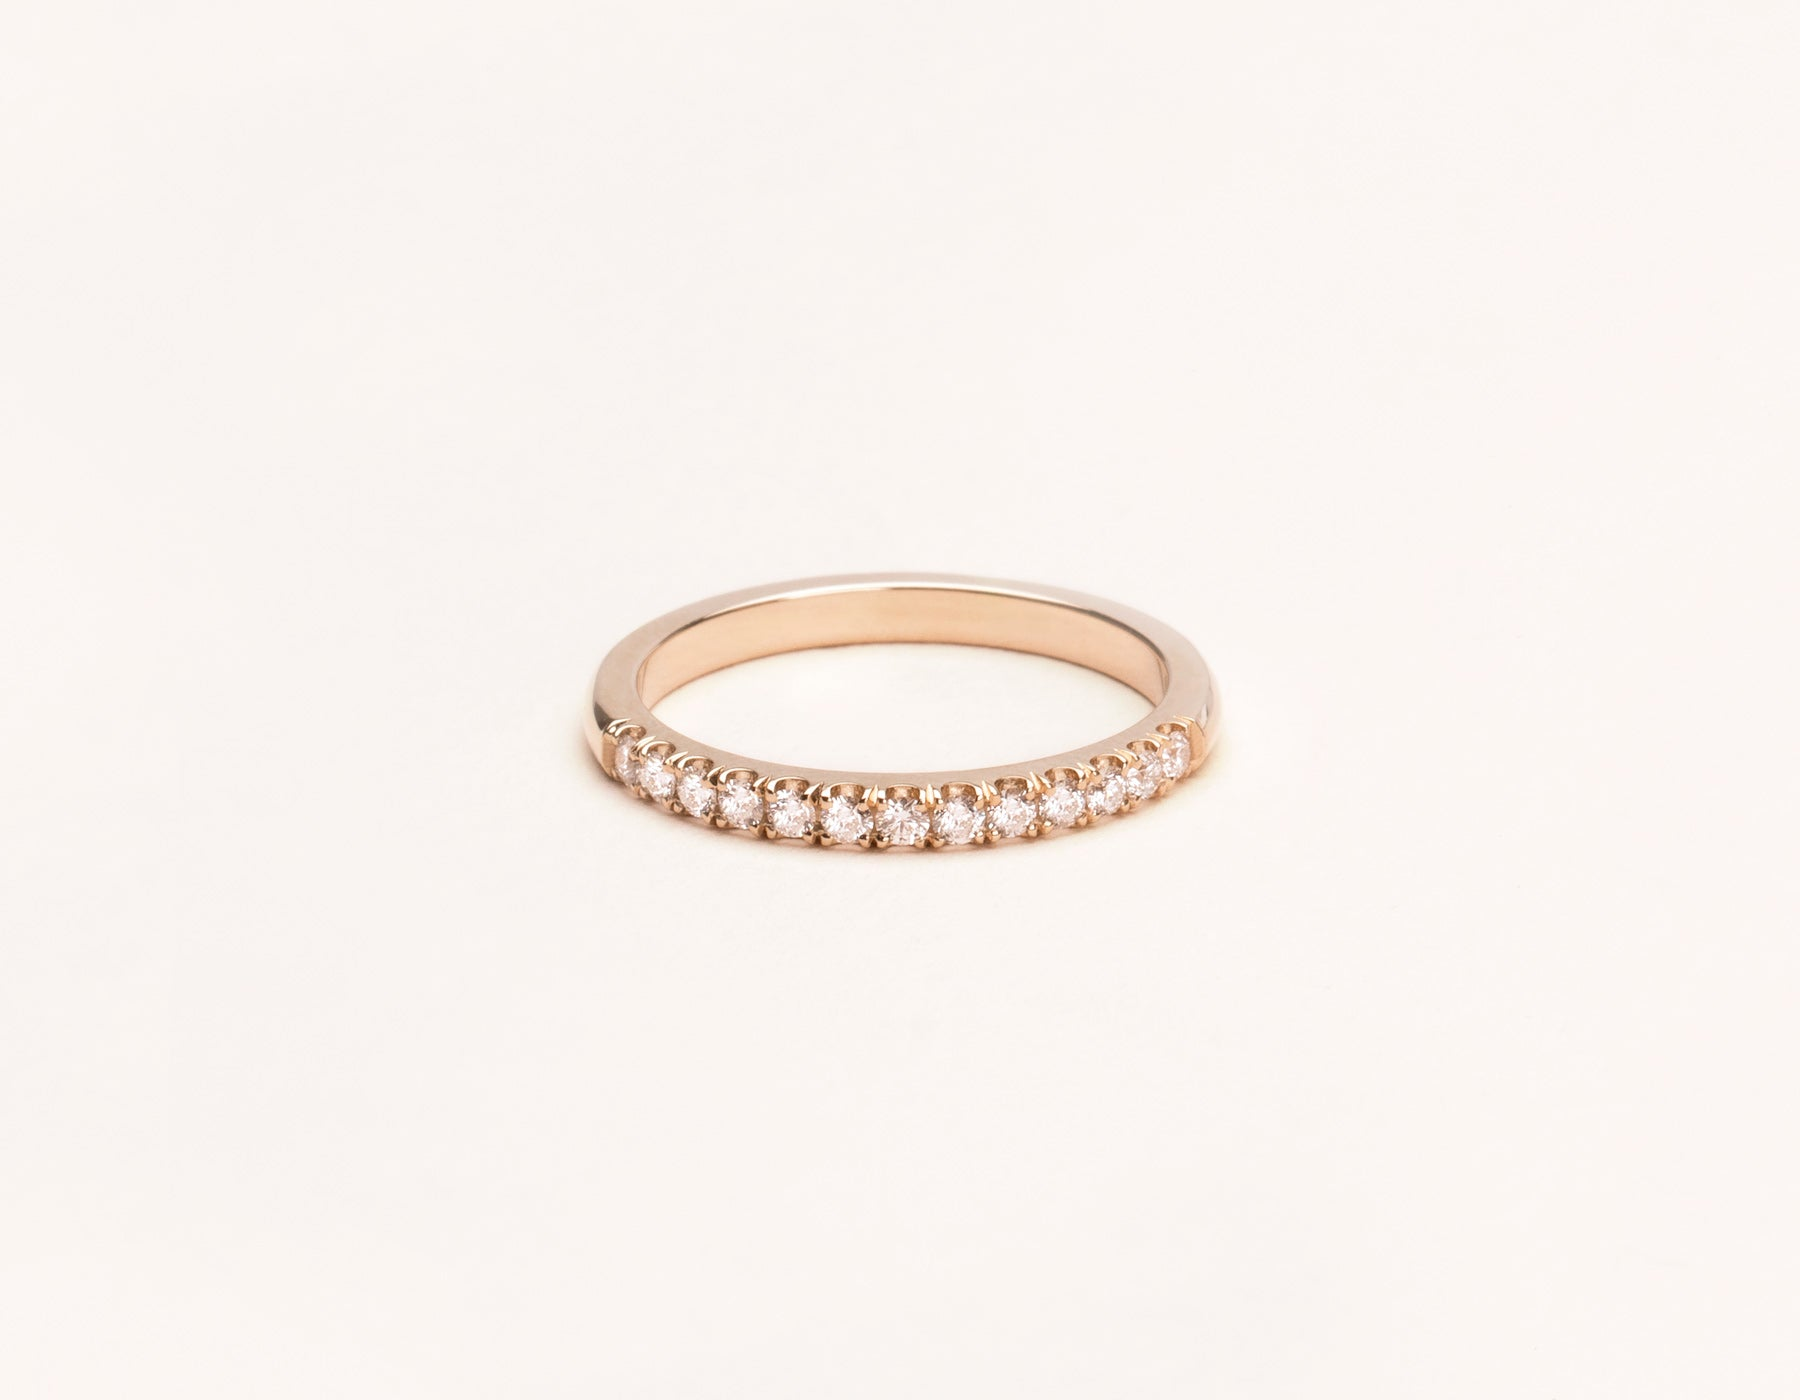 gold bouquet band in rings your favorite infinity pick bands rose en ring delicate minimalist heart style